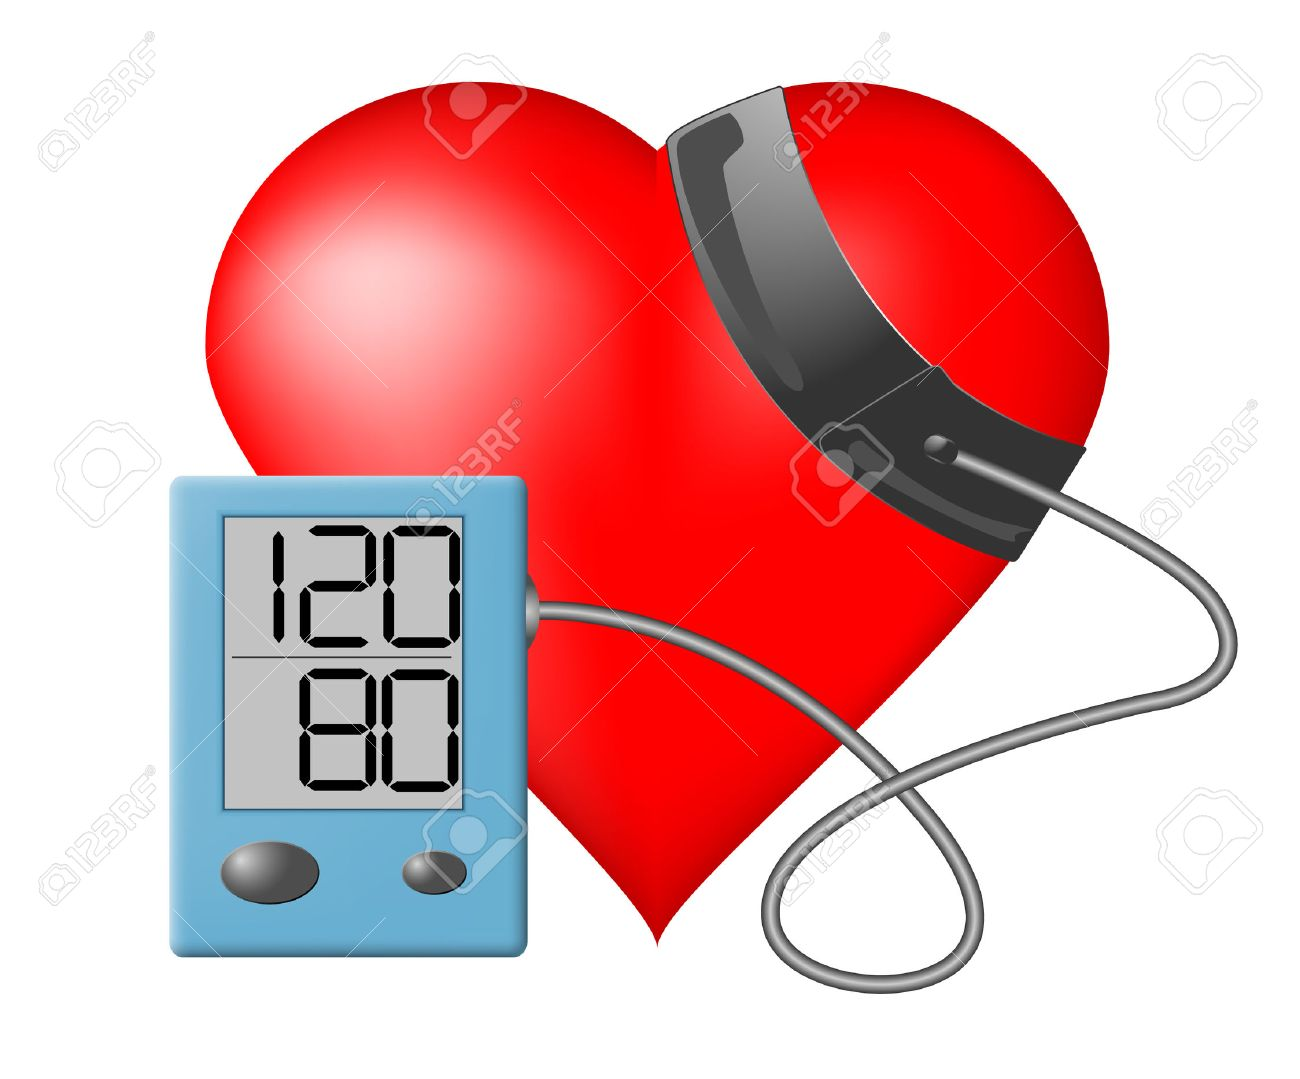 Heart and blood pressure monitor on a white background - 24542756